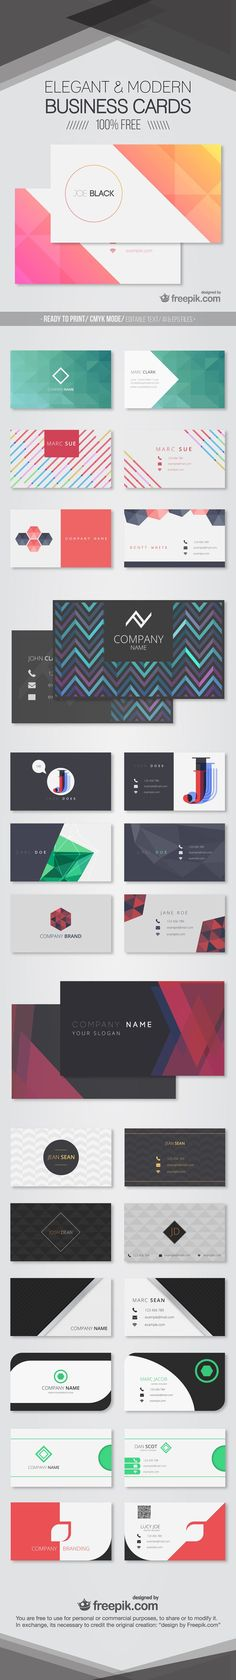 6 Useful Tips on Business Card Marketing - Start a Handyman Business Web Design, Name Card Design, Design Cars, Modern Business Cards, Professional Business Cards, Creative Business, Corporate Design, Business Card Design, Free Business Card Templates